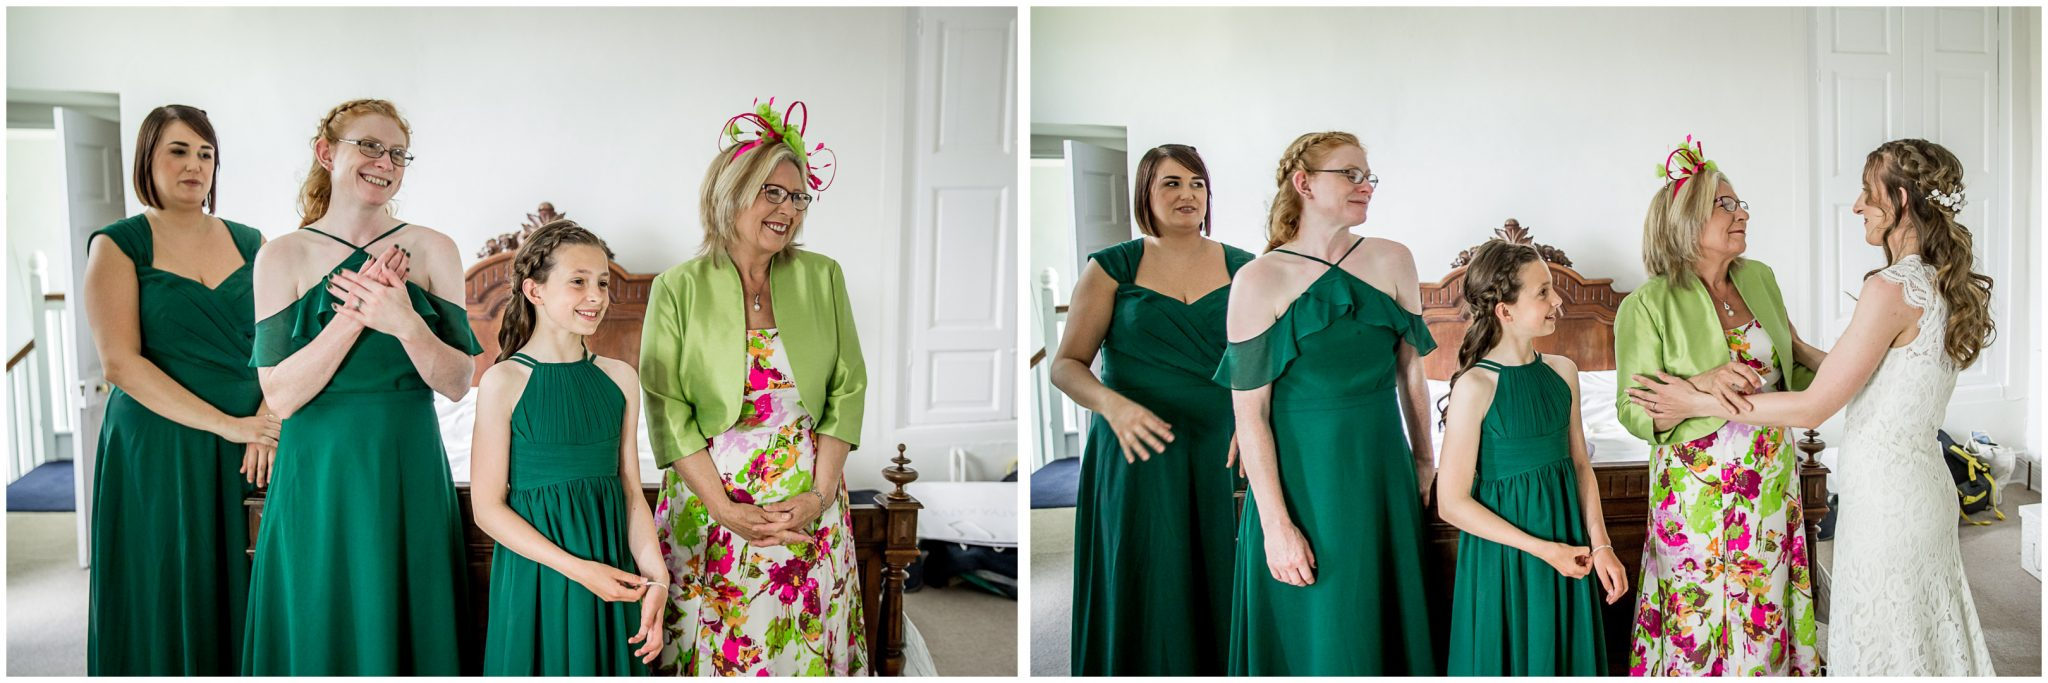 Bridesmaids and mother react to seeing the bride in dress for the first time